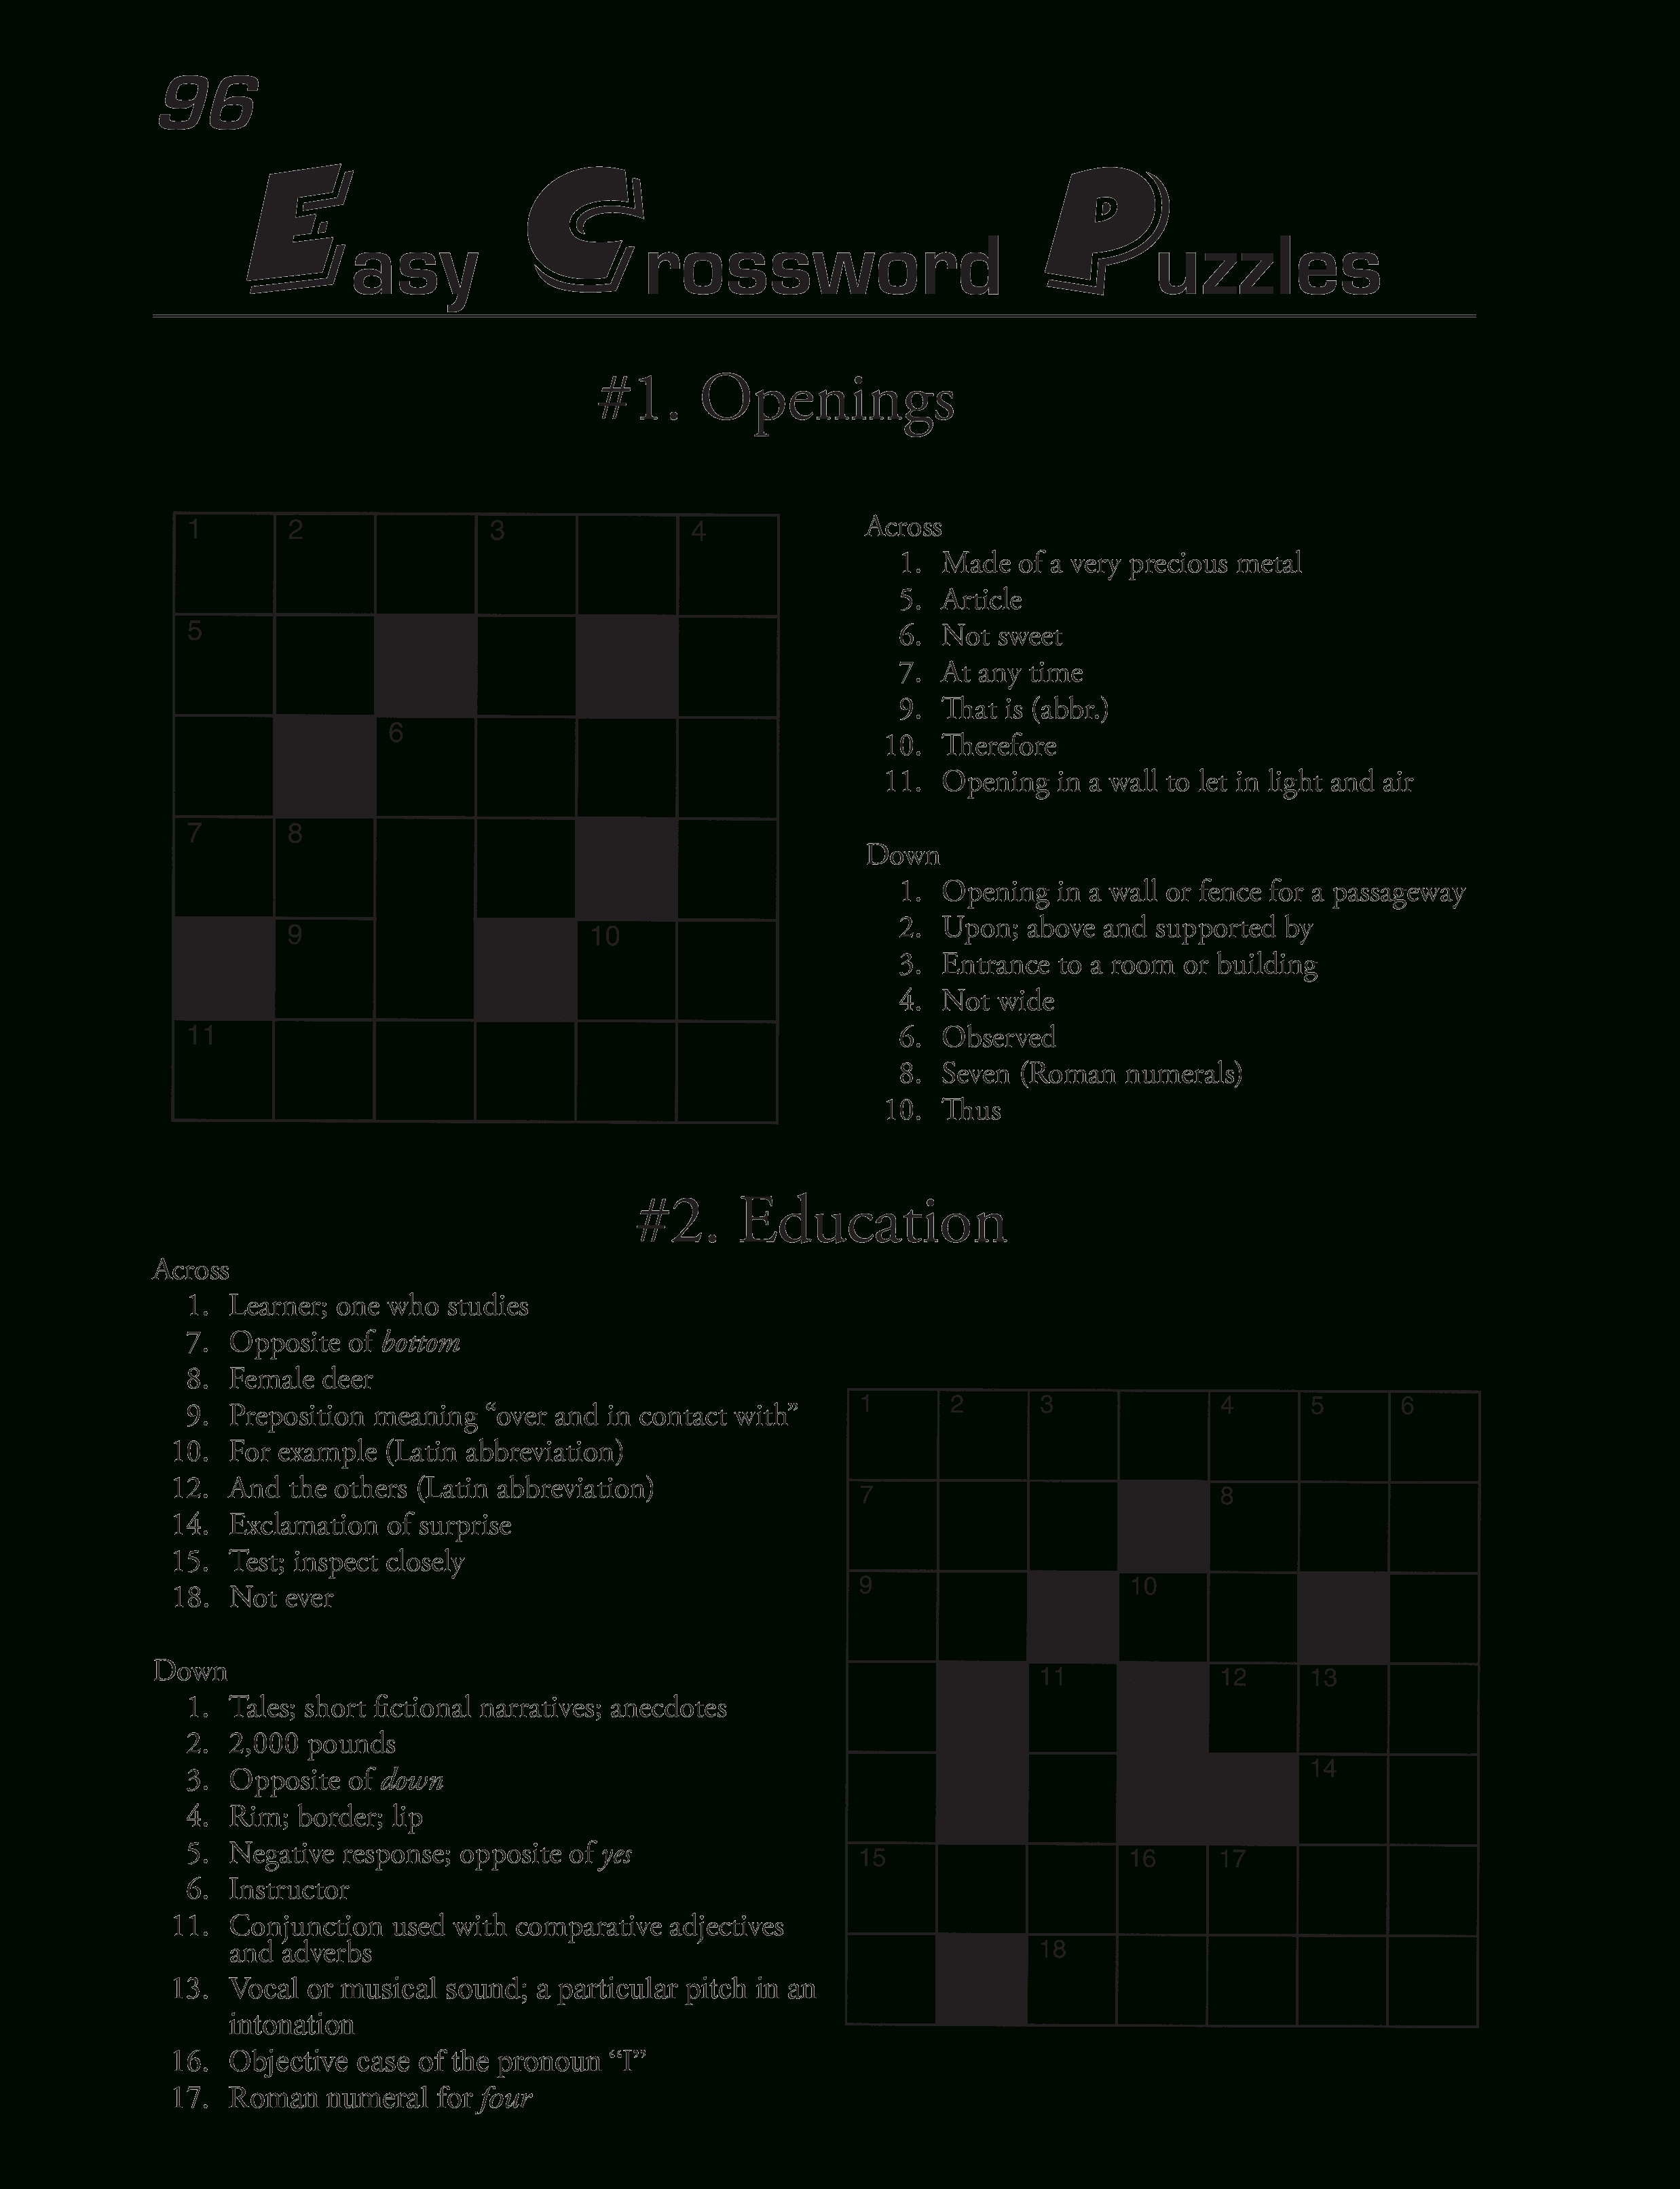 Free Printable Crossword Puzzles Template | Templates At - Create A Crossword Puzzle Free Printable